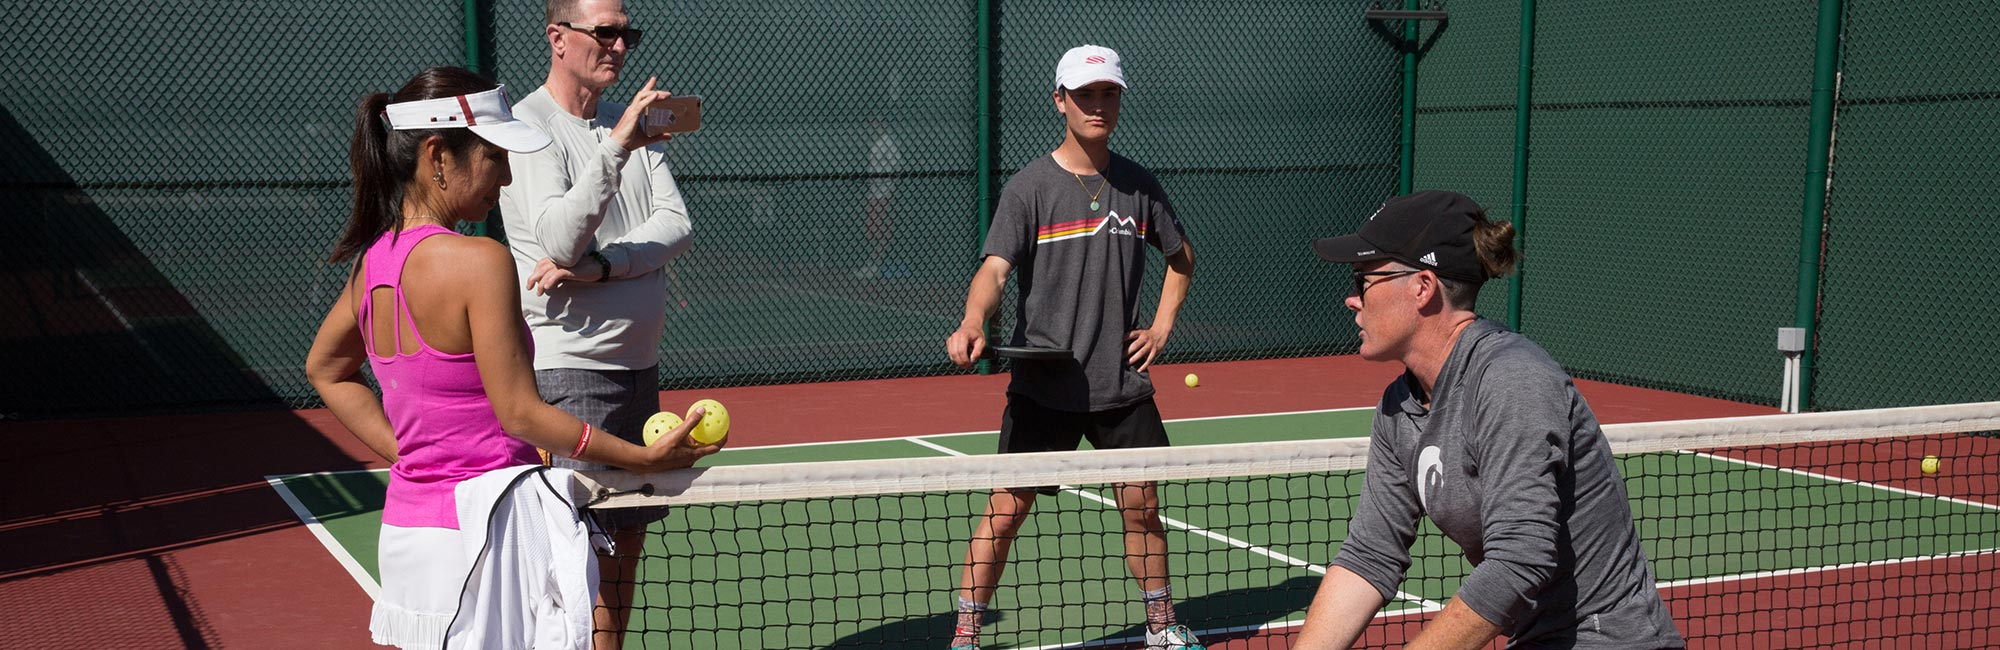 Meet our Pickleball Pros